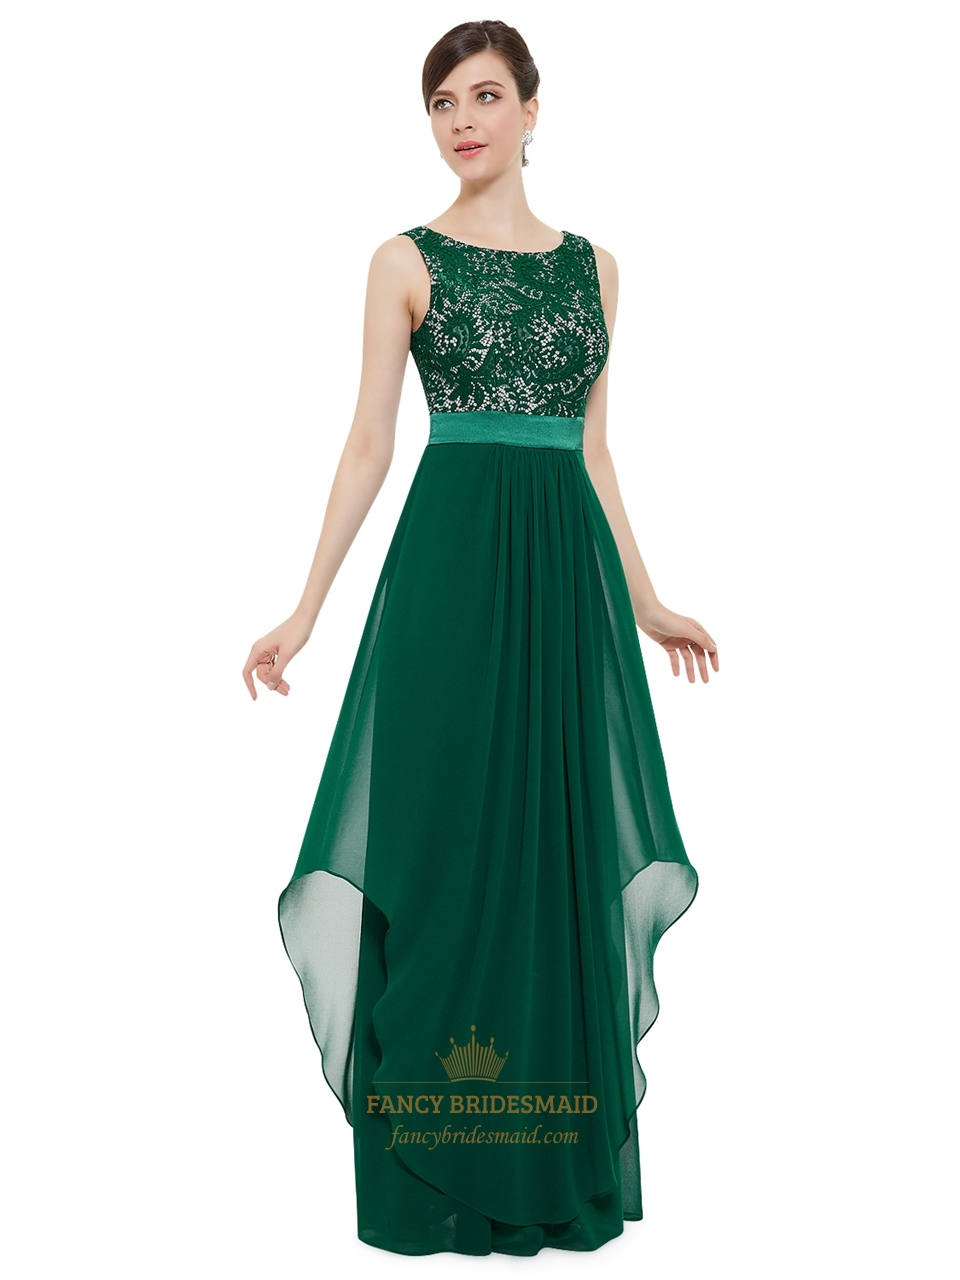 Elegant Emerald Green Chiffon Bridesmaid Dresses With Lace